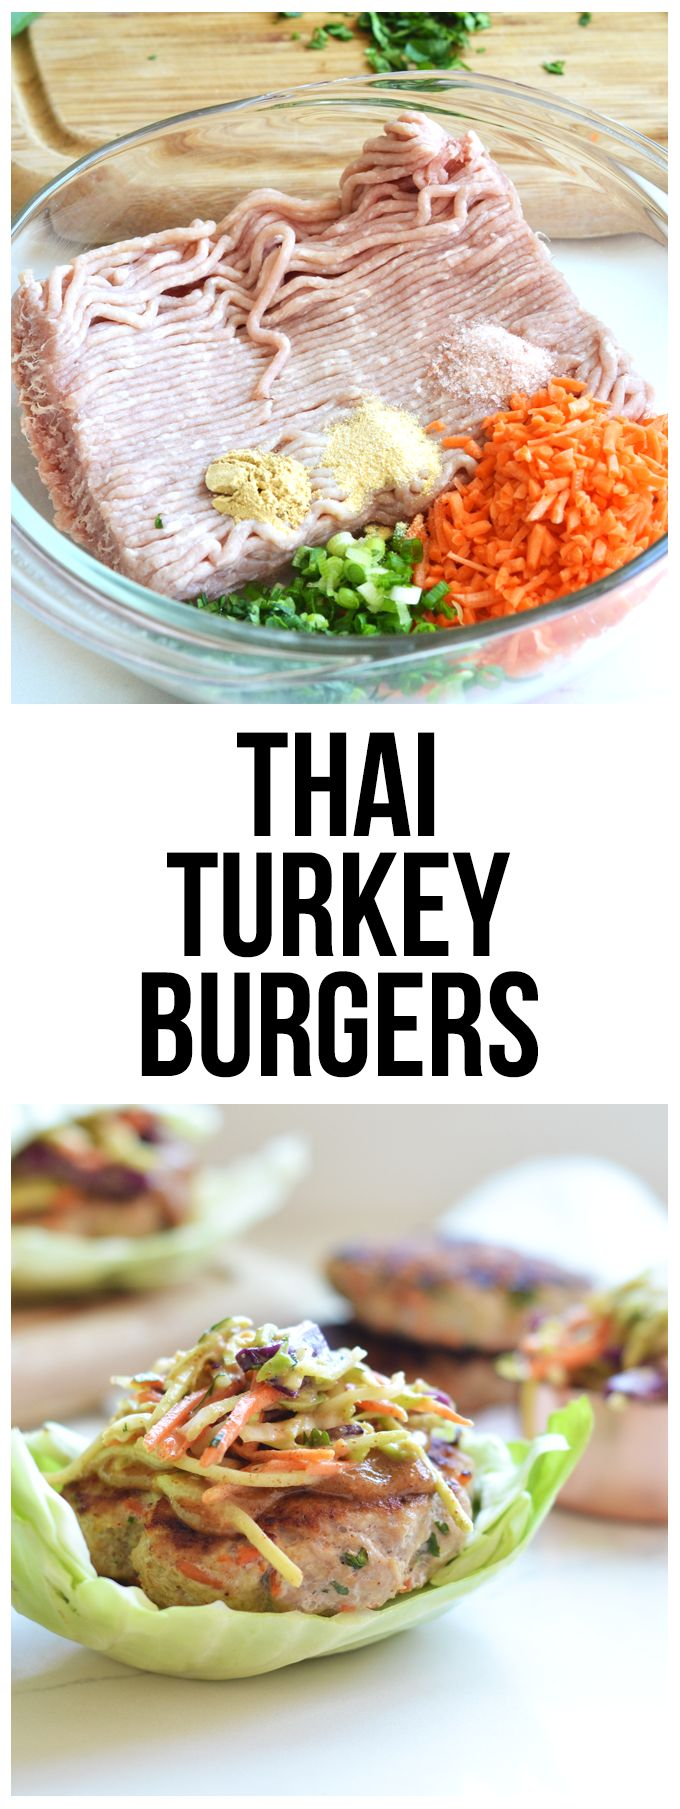 #ad These Thai Turkey burgers are bursting with flavor and are clean and Whole30 compliant! Perfect meal for summer!